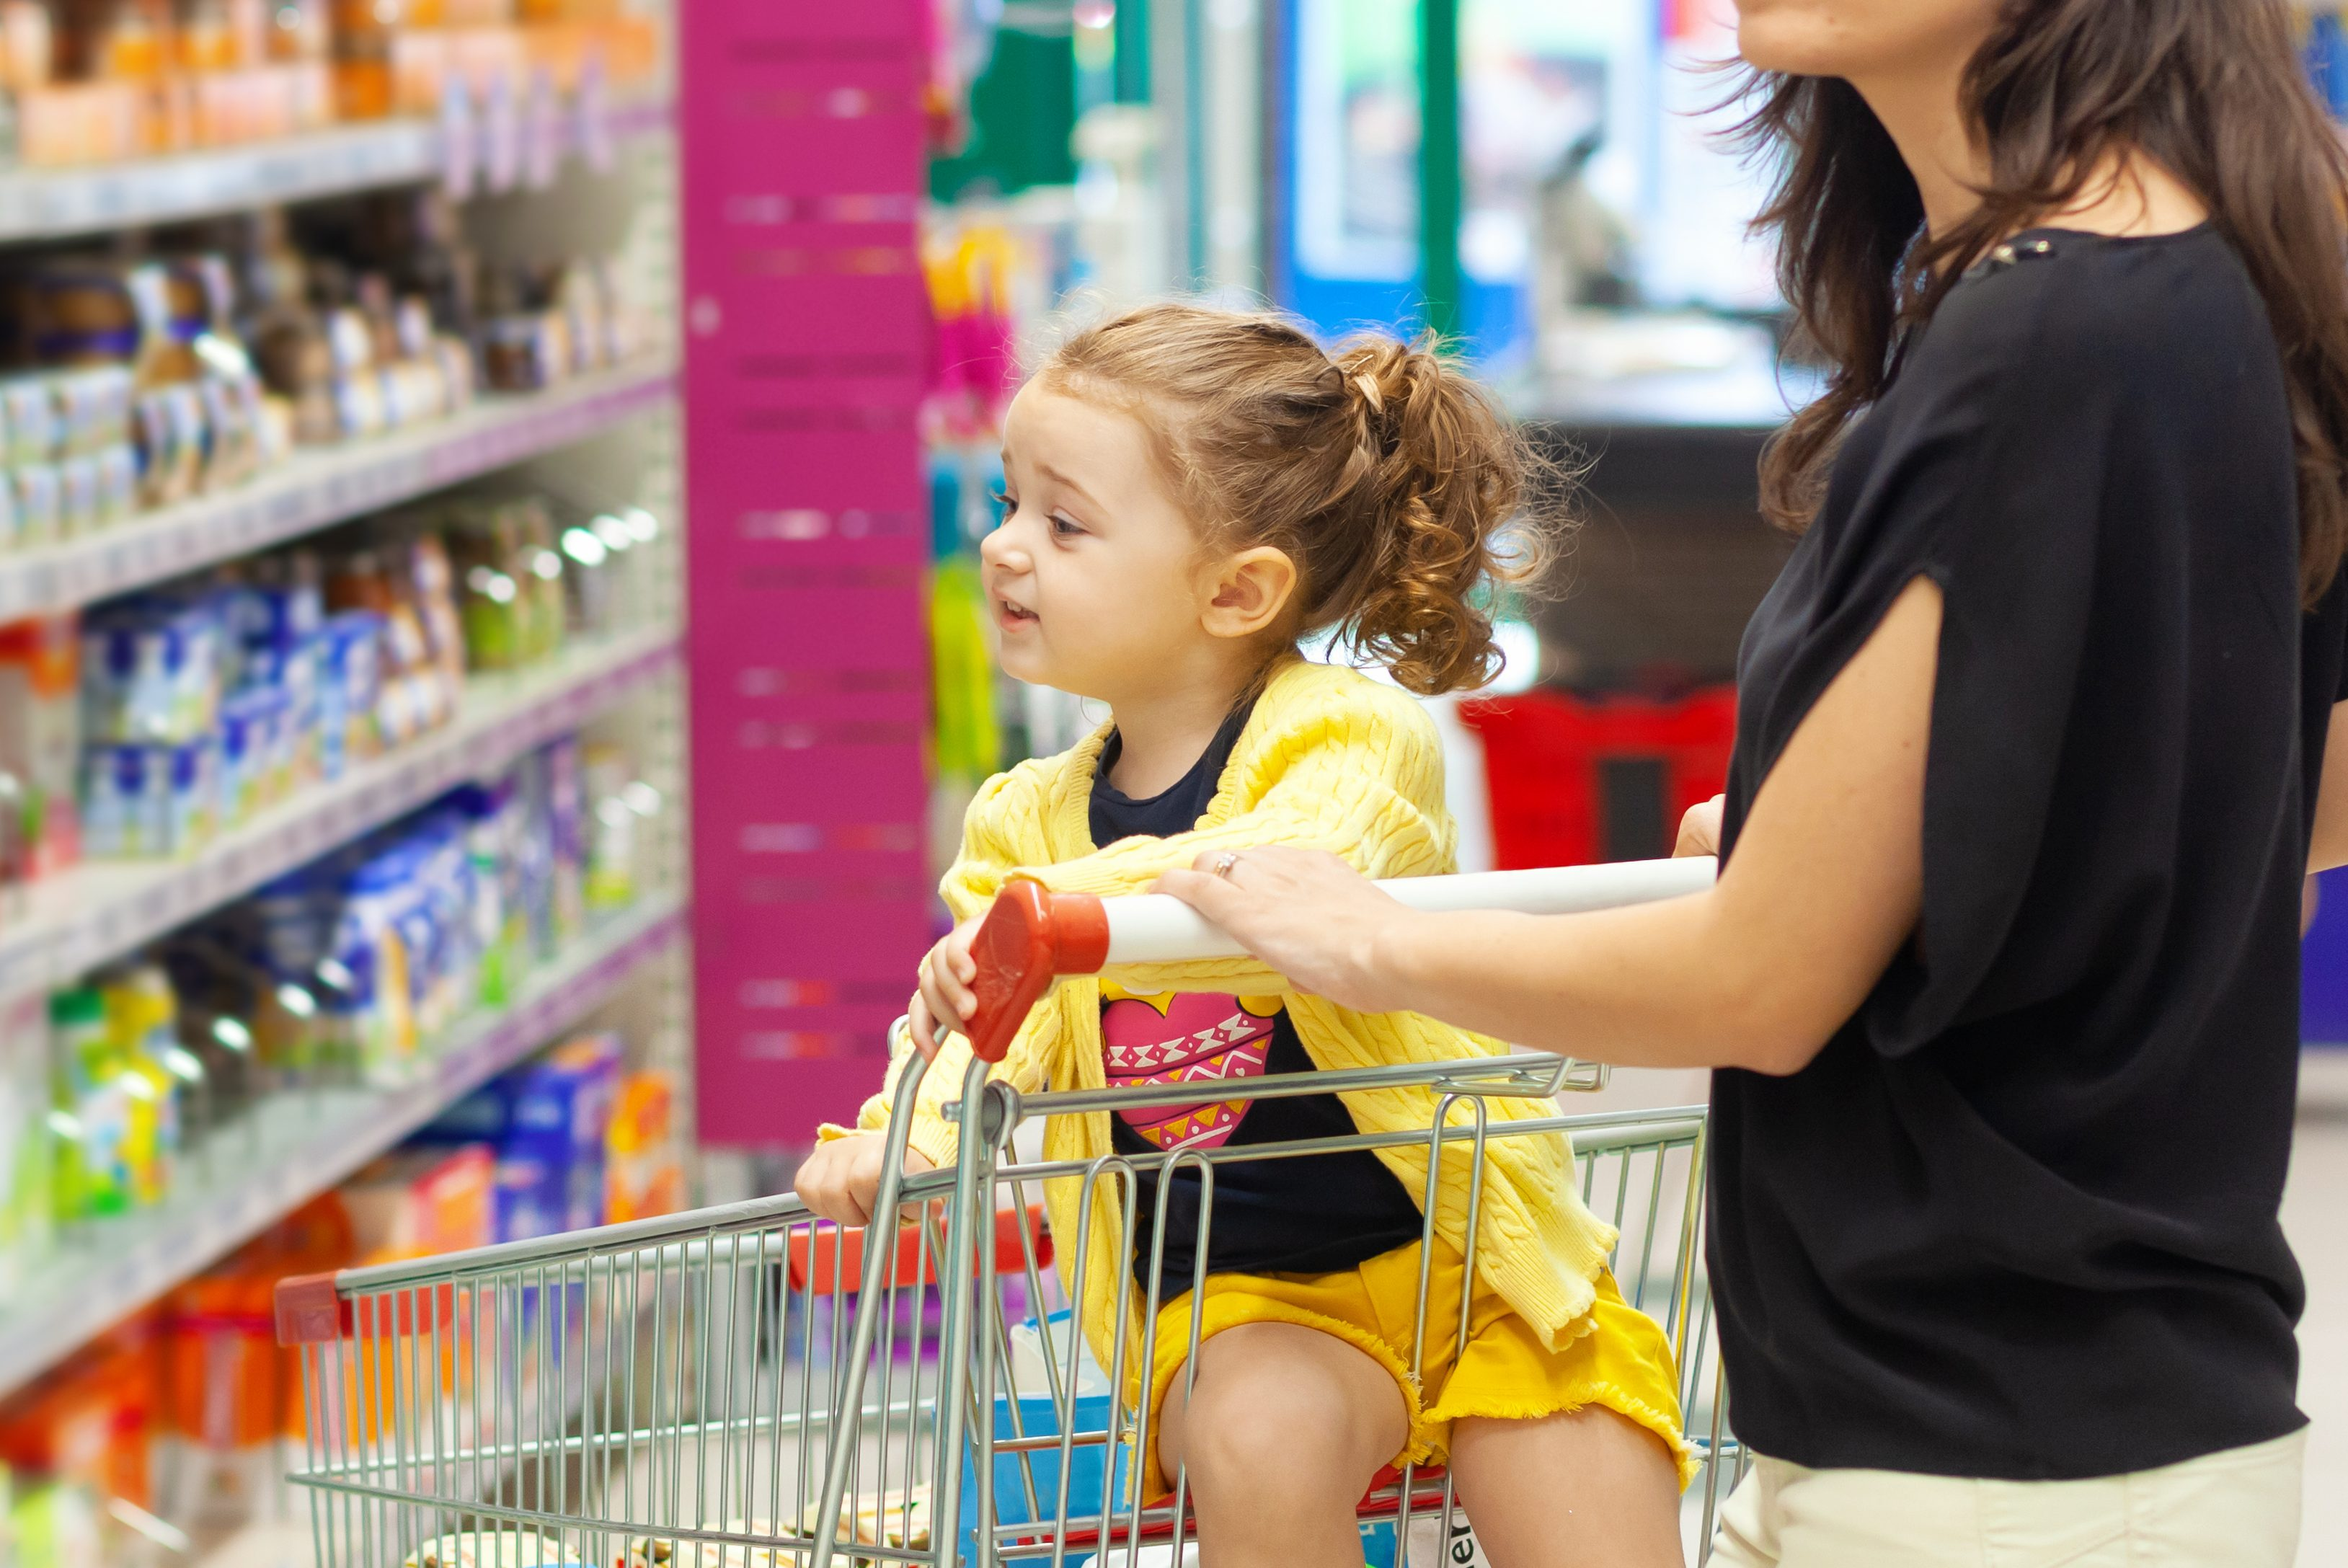 Child looks at grocery shelf selection from a shopping cart. (Shutterstock Image)